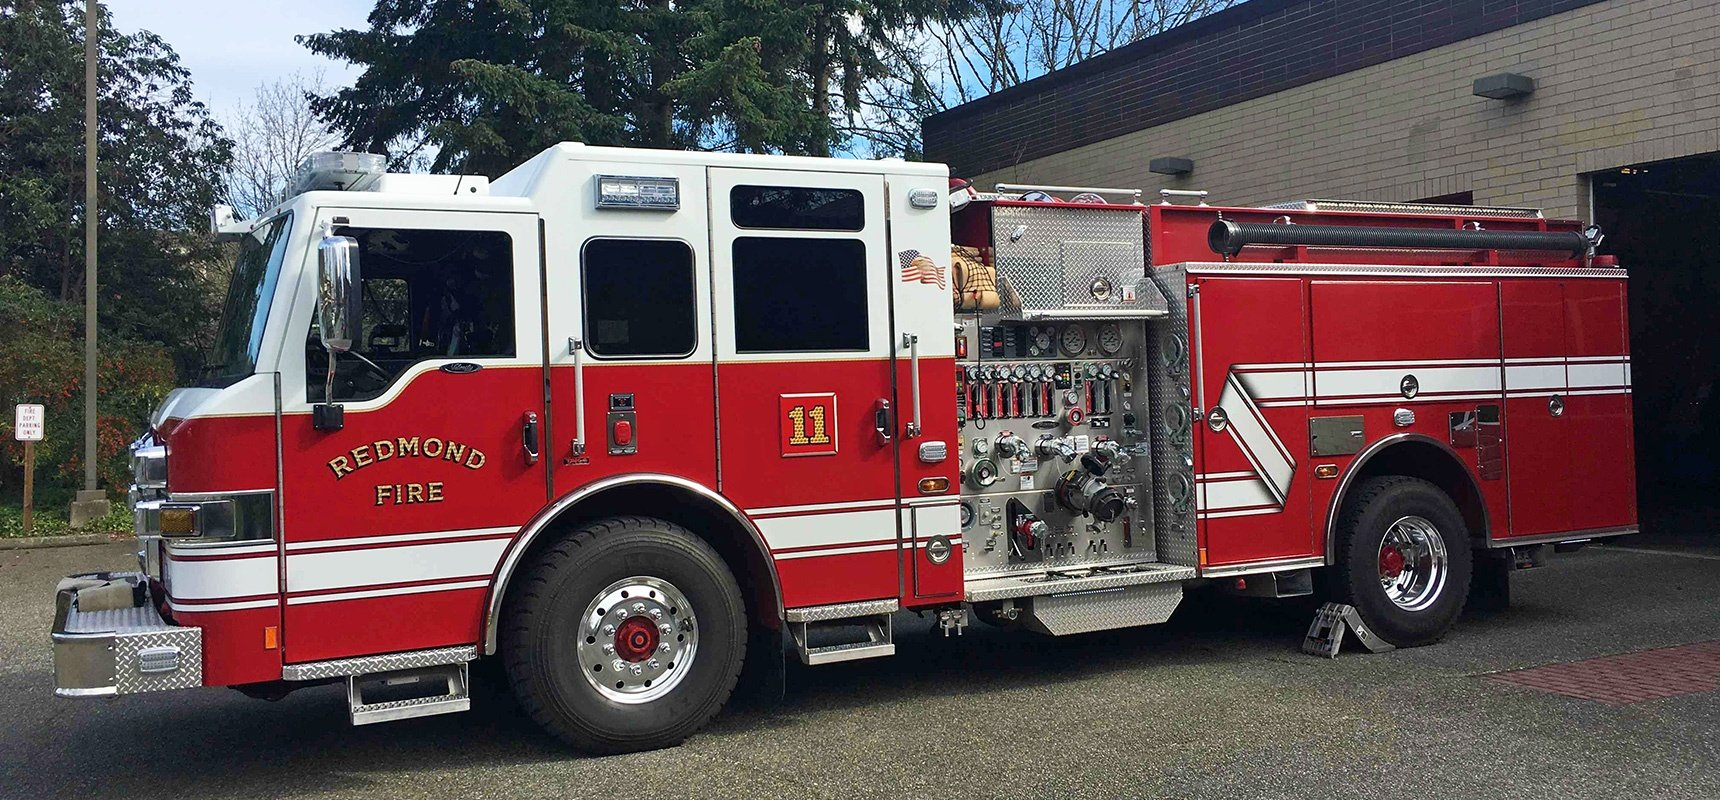 Redmond,-Wash.-Fire-Department-Takes-Delivery-of-Three-Pierce-Apparatus-Now-a-100-Percent-Pierce-Fleet_Header.jpg